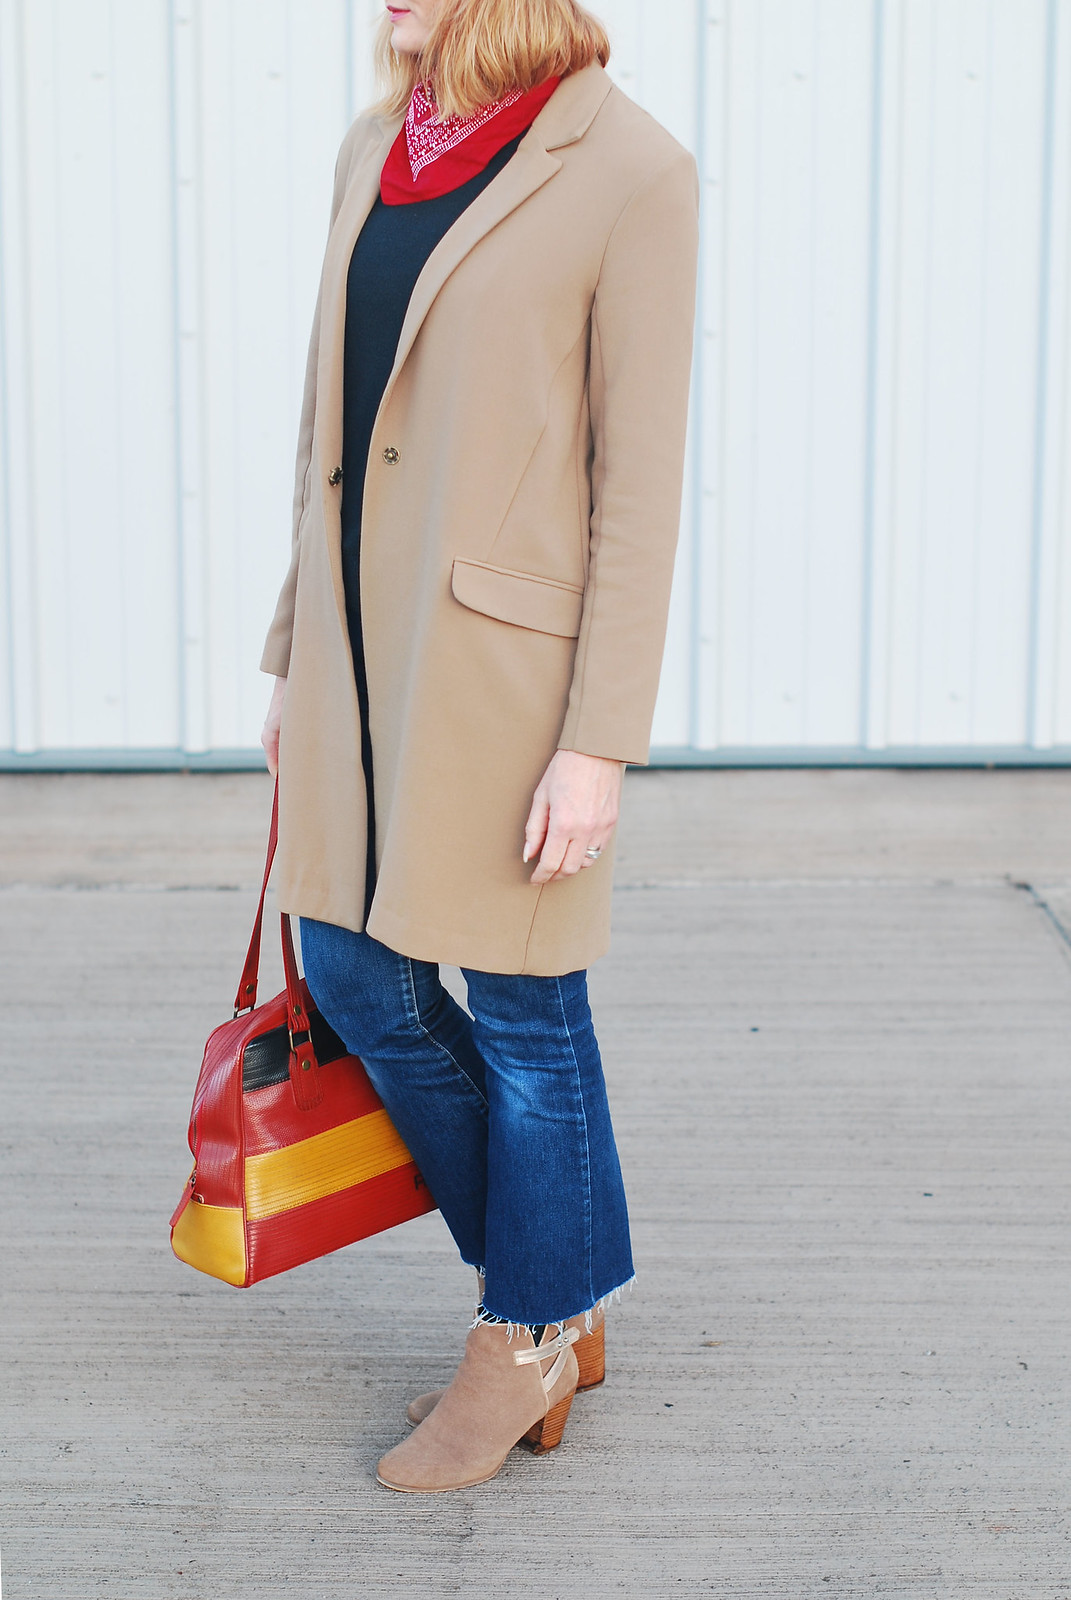 How to style a longline camel blazer for autumn/fall: Cropped flared jeans, suede ankle boots, vintage baker boy hat and neck scarf | Not Dressed As Lamb, over 40 style